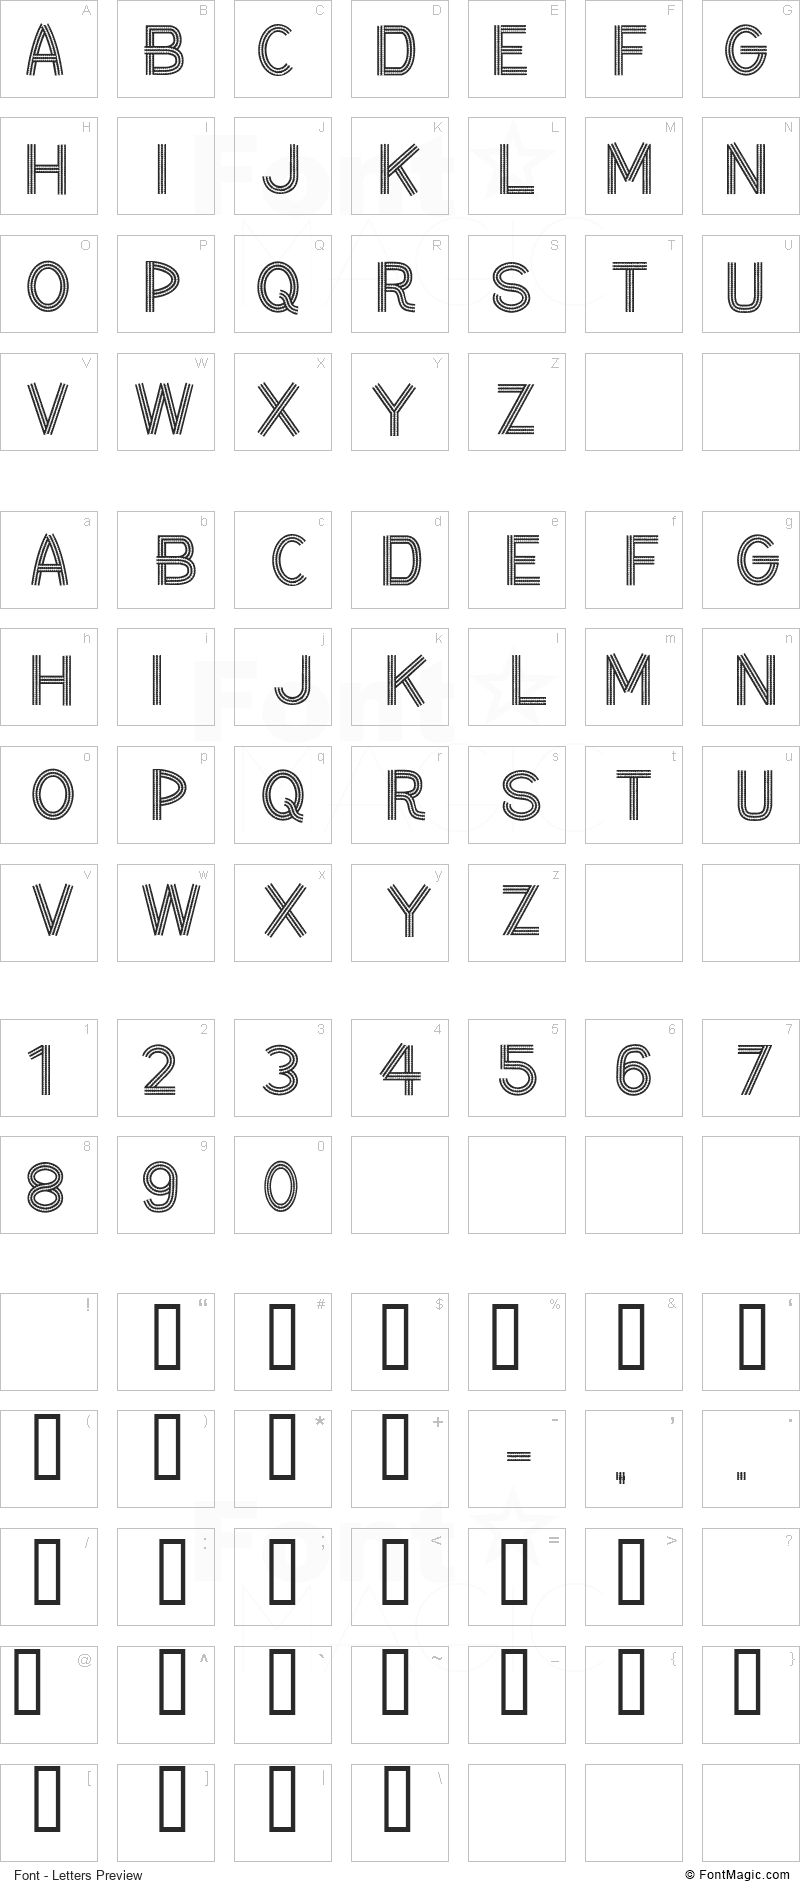 CF Ceinture Flechee Font - All Latters Preview Chart